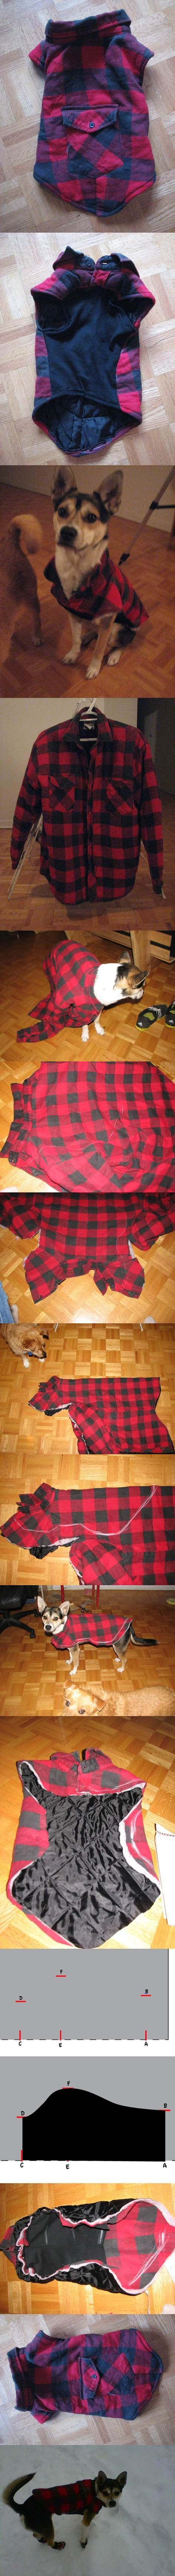 Jaqueta DIY Dog Inverno de Old camisa 2